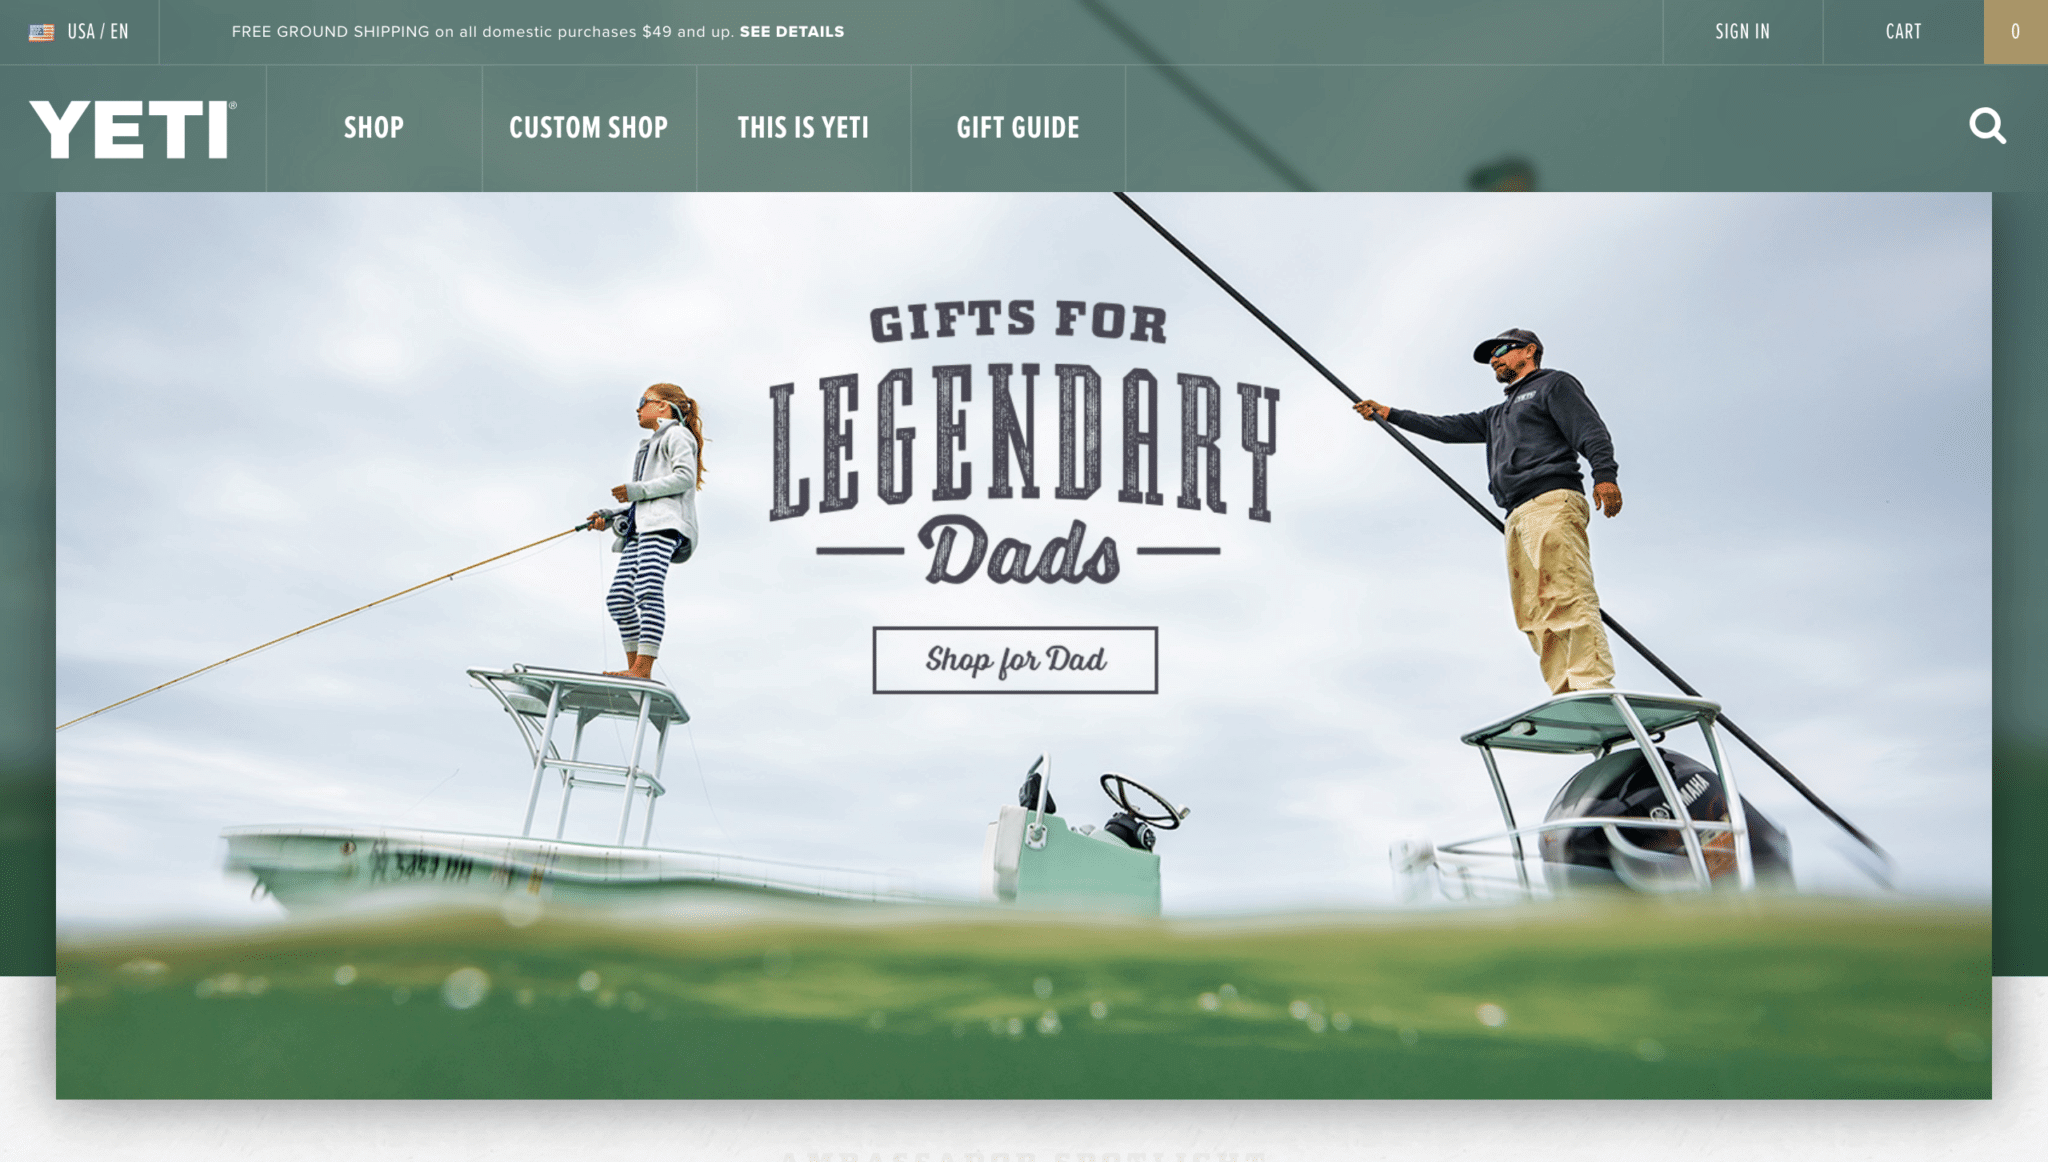 Home page design for Yeti.